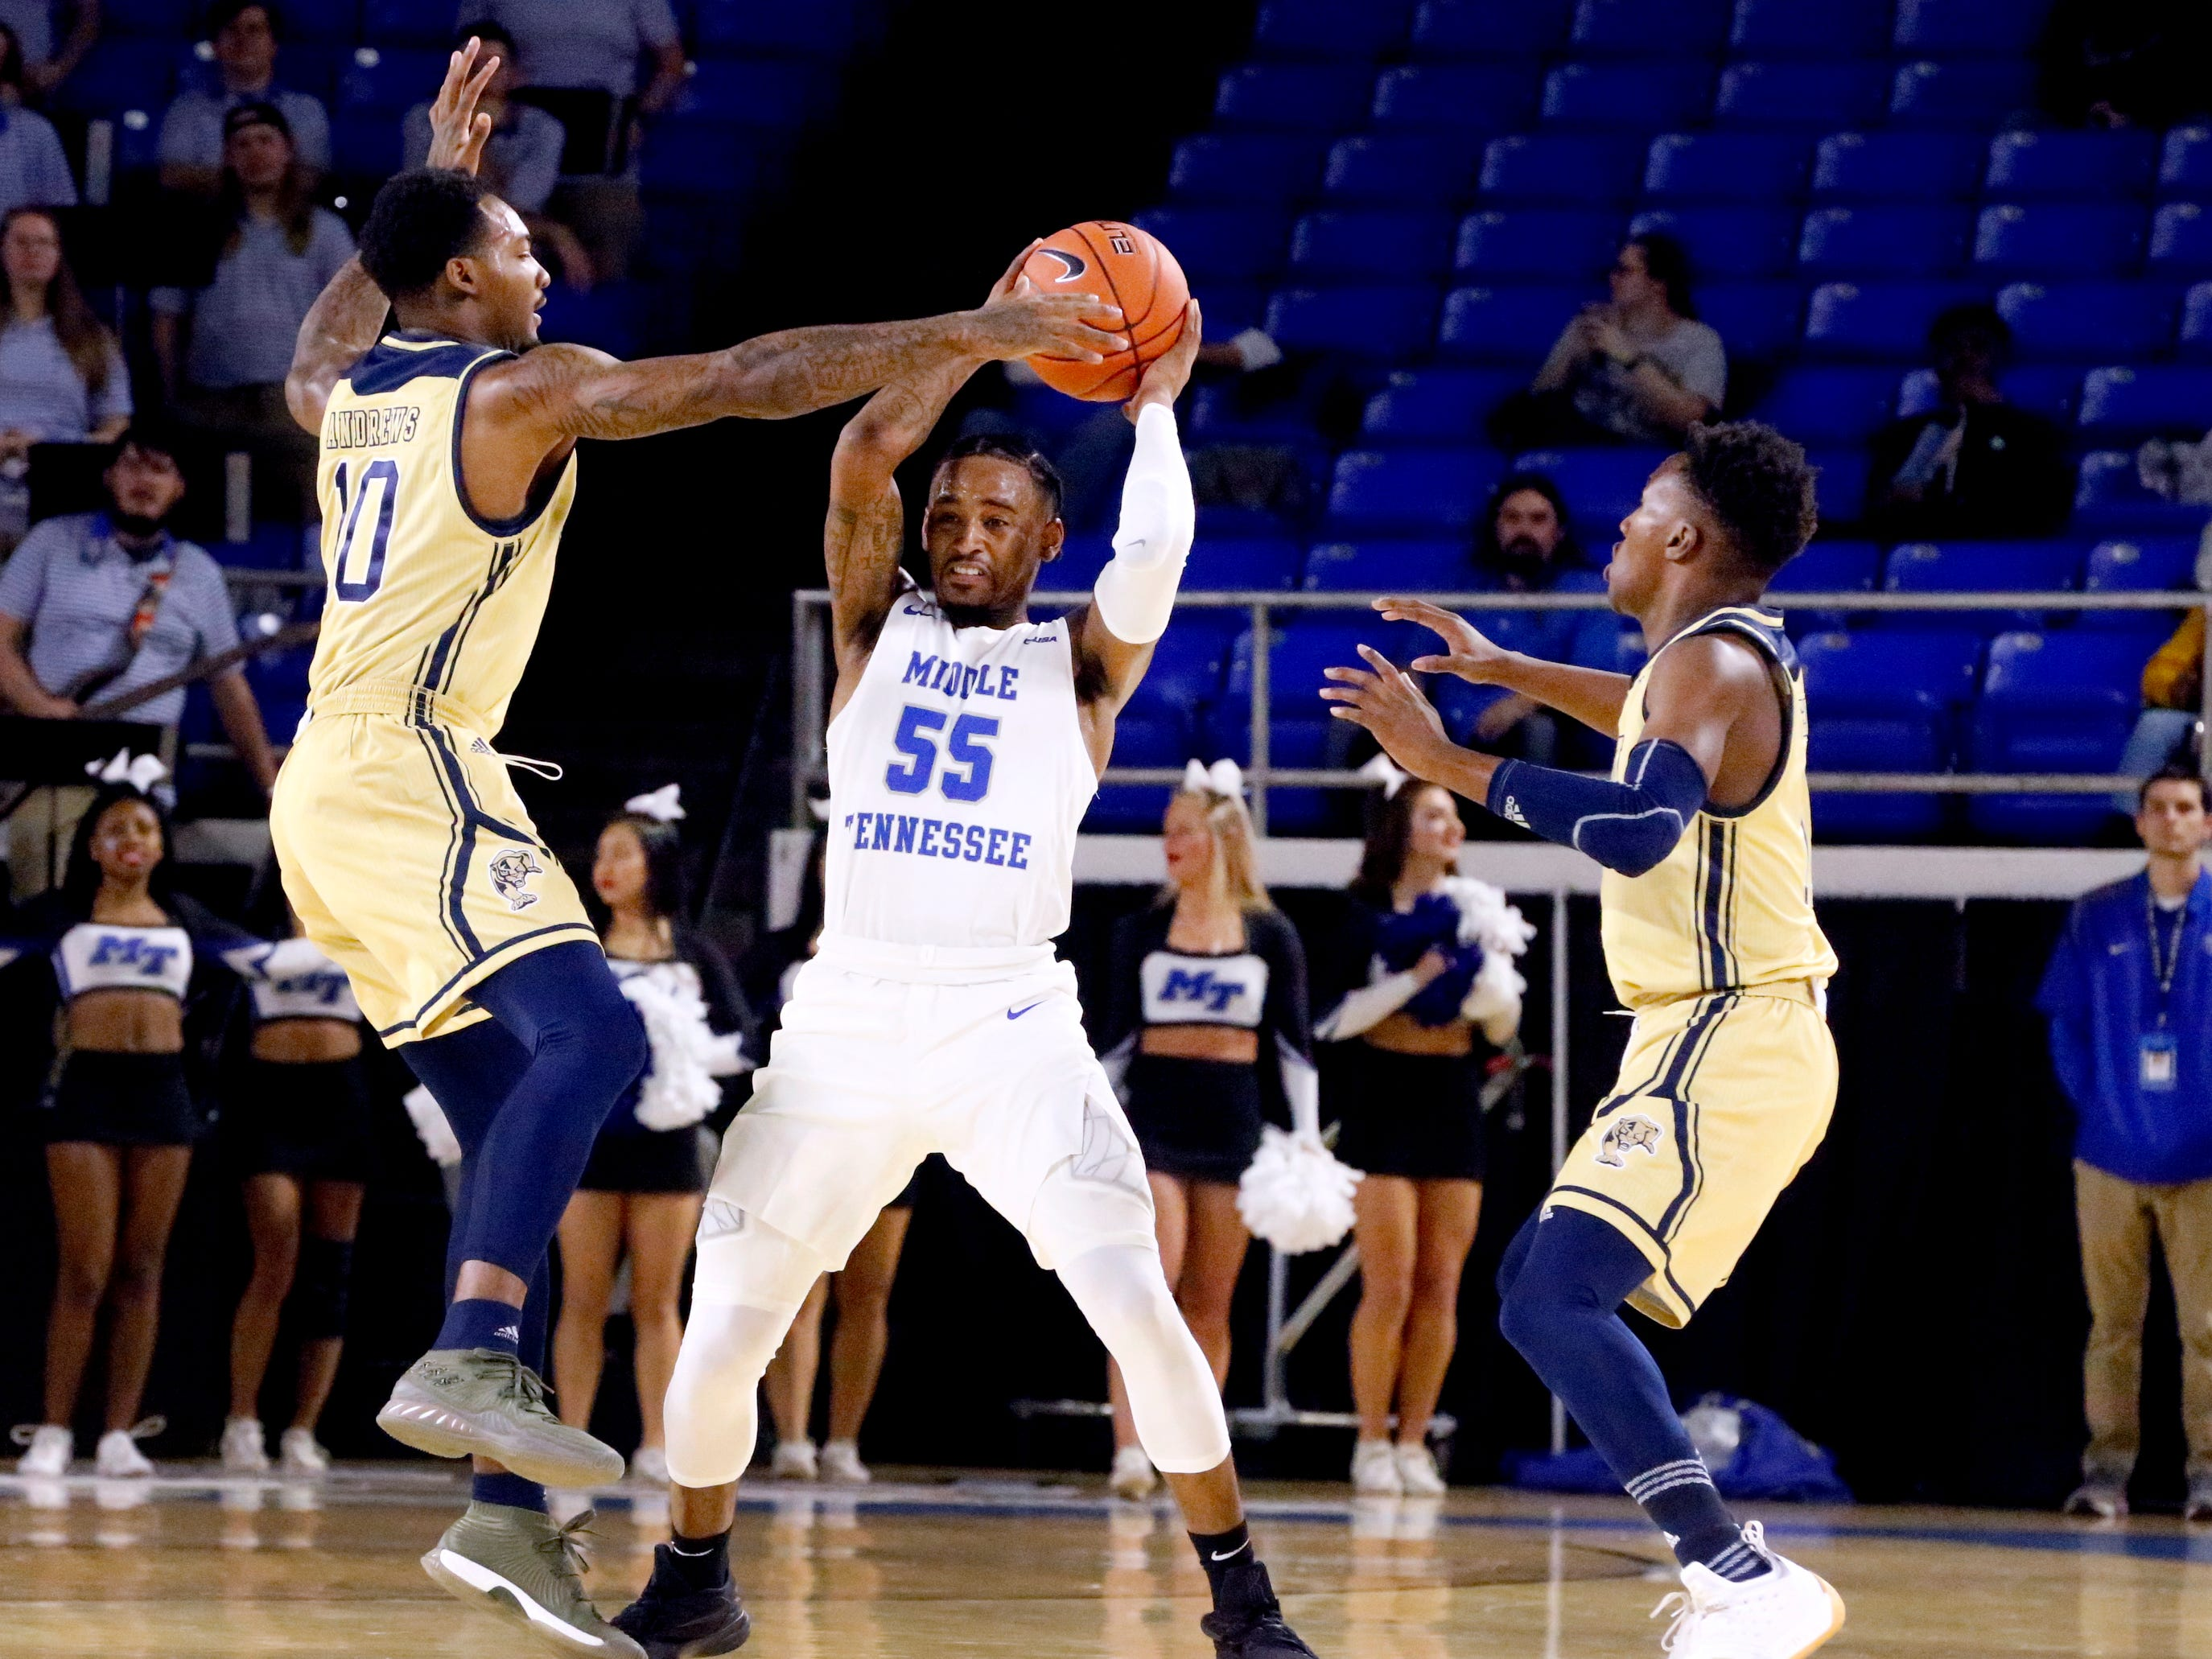 MTSU's guard Antonio Green (55) brings the ball down the court as he is guarded by FIU's guard Willy Nunez Jr. (20) and FIU's guard Marcus Burwell (11) on Thursday Jan. 3, 2019, at MTSU.